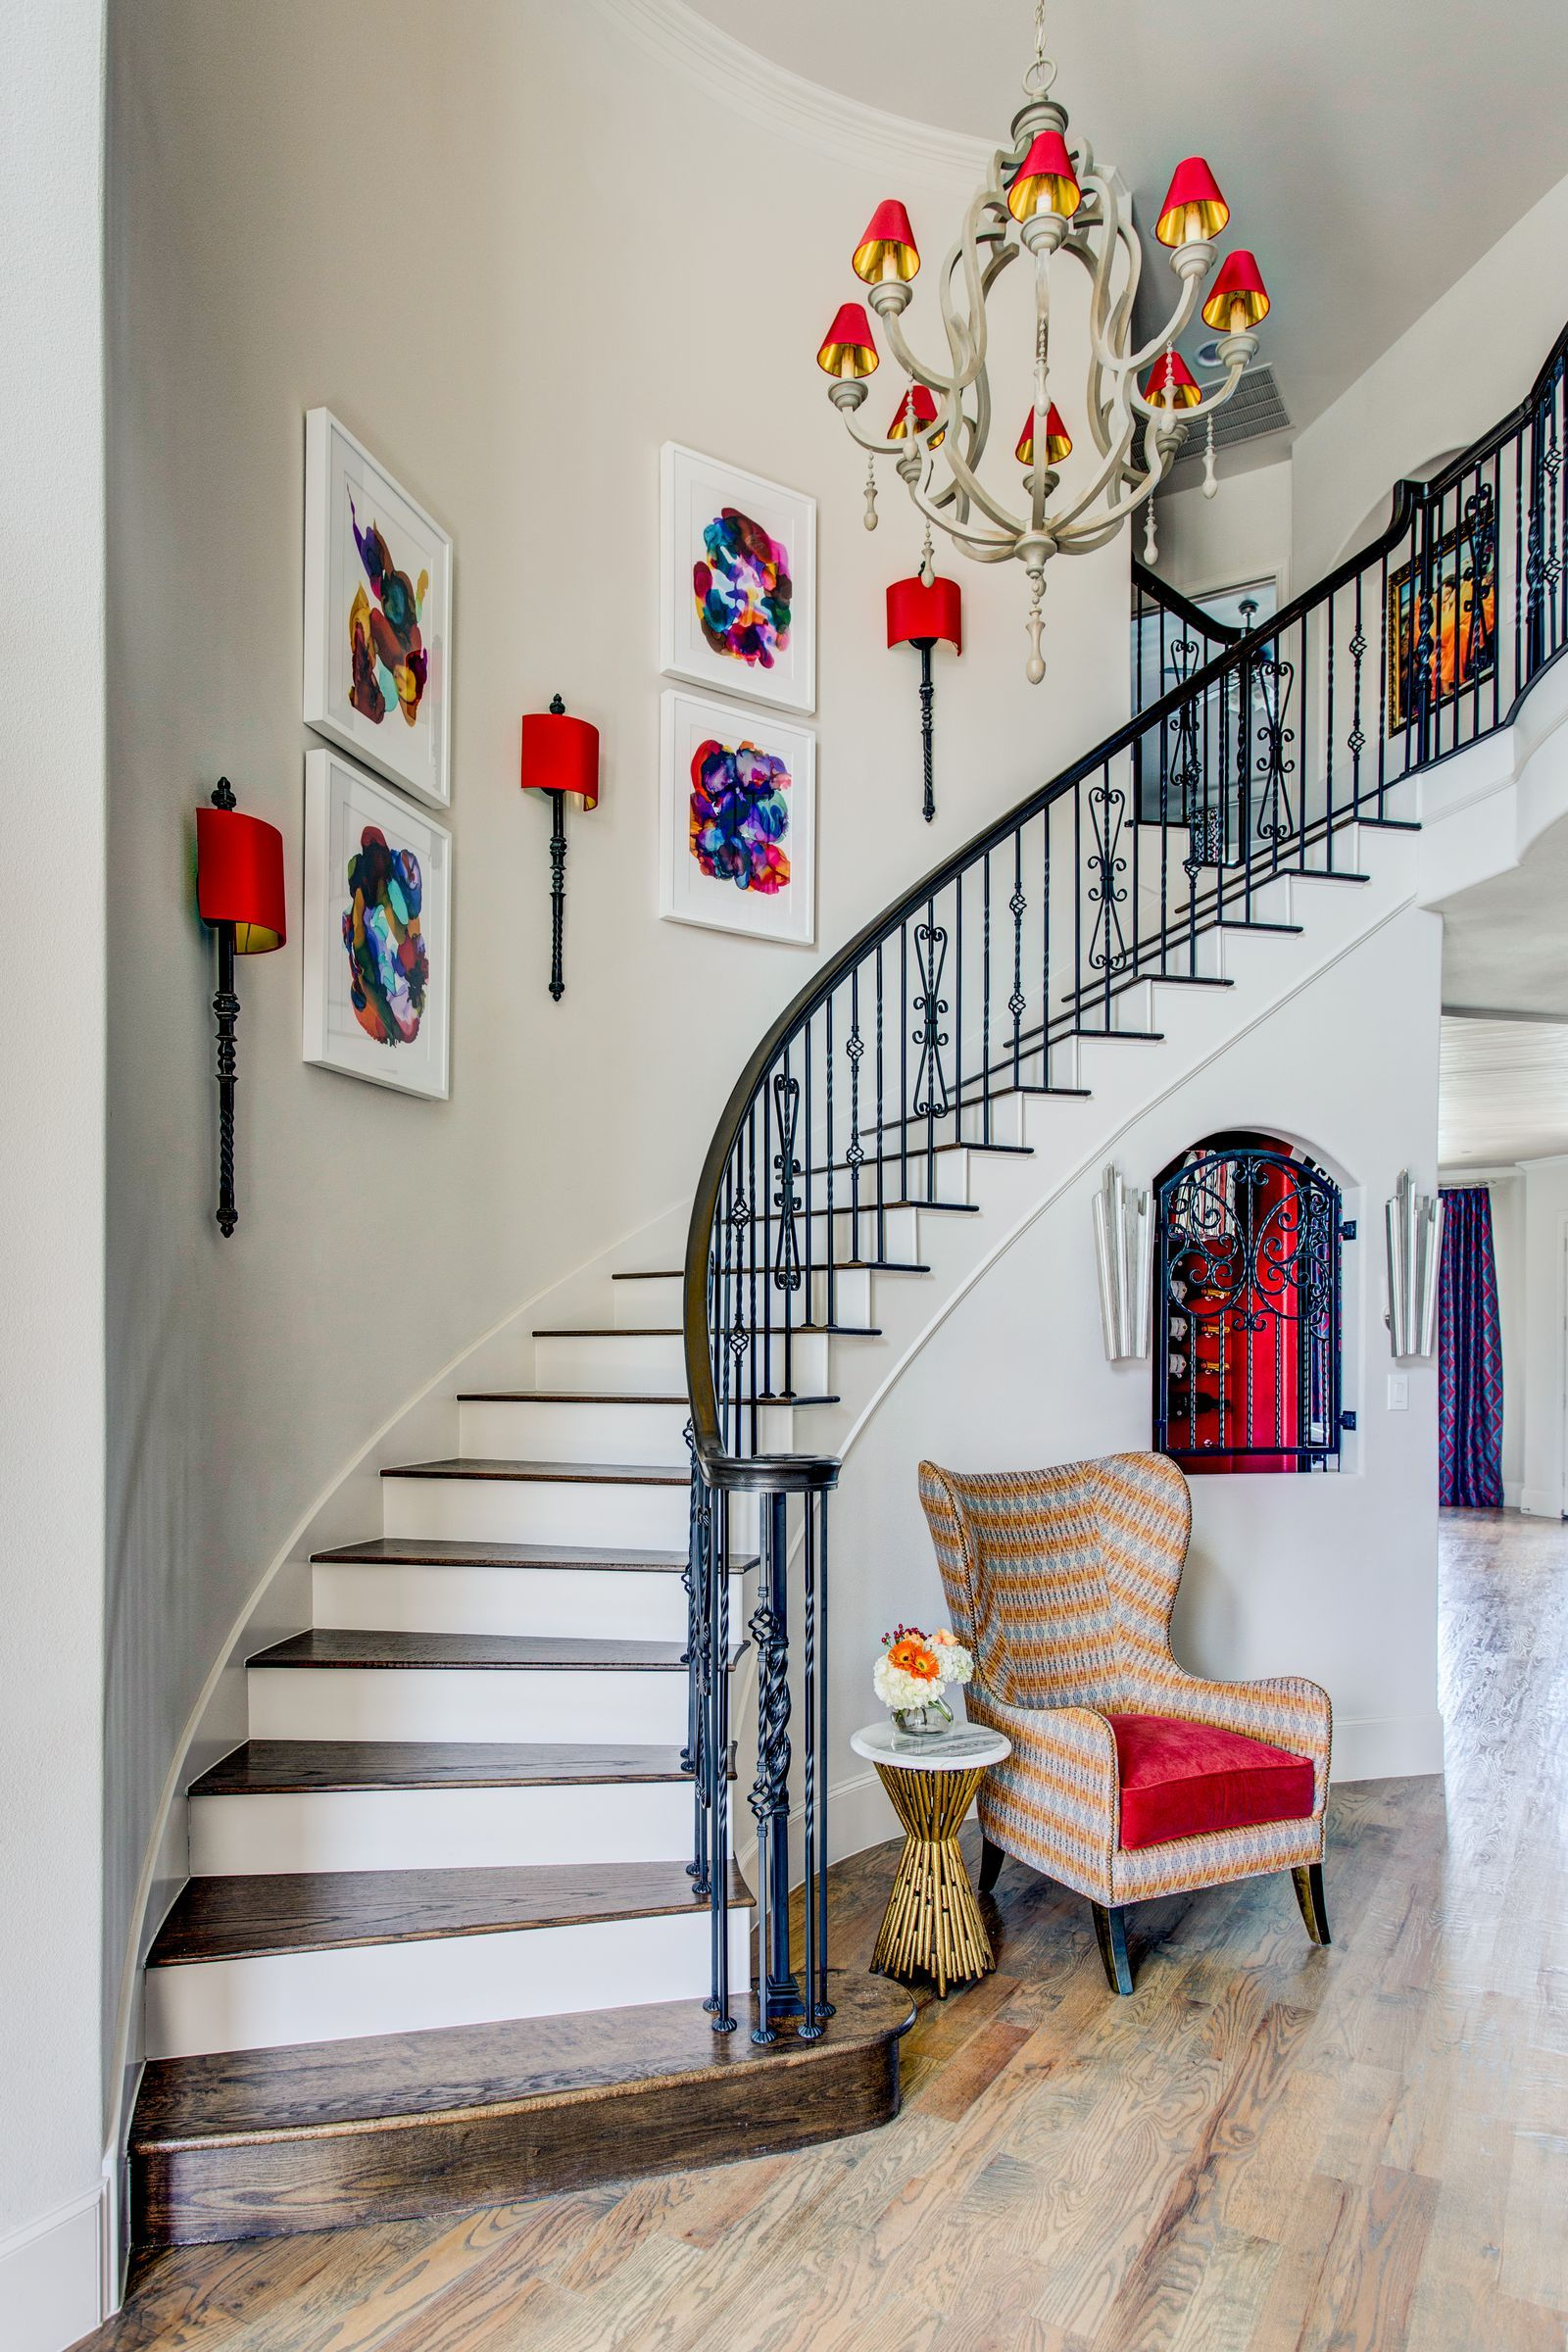 27 Stylish Staircase Decorating Ideas | Stairway ... on Creative Staircase Wall Decorating Ideas  id=26410